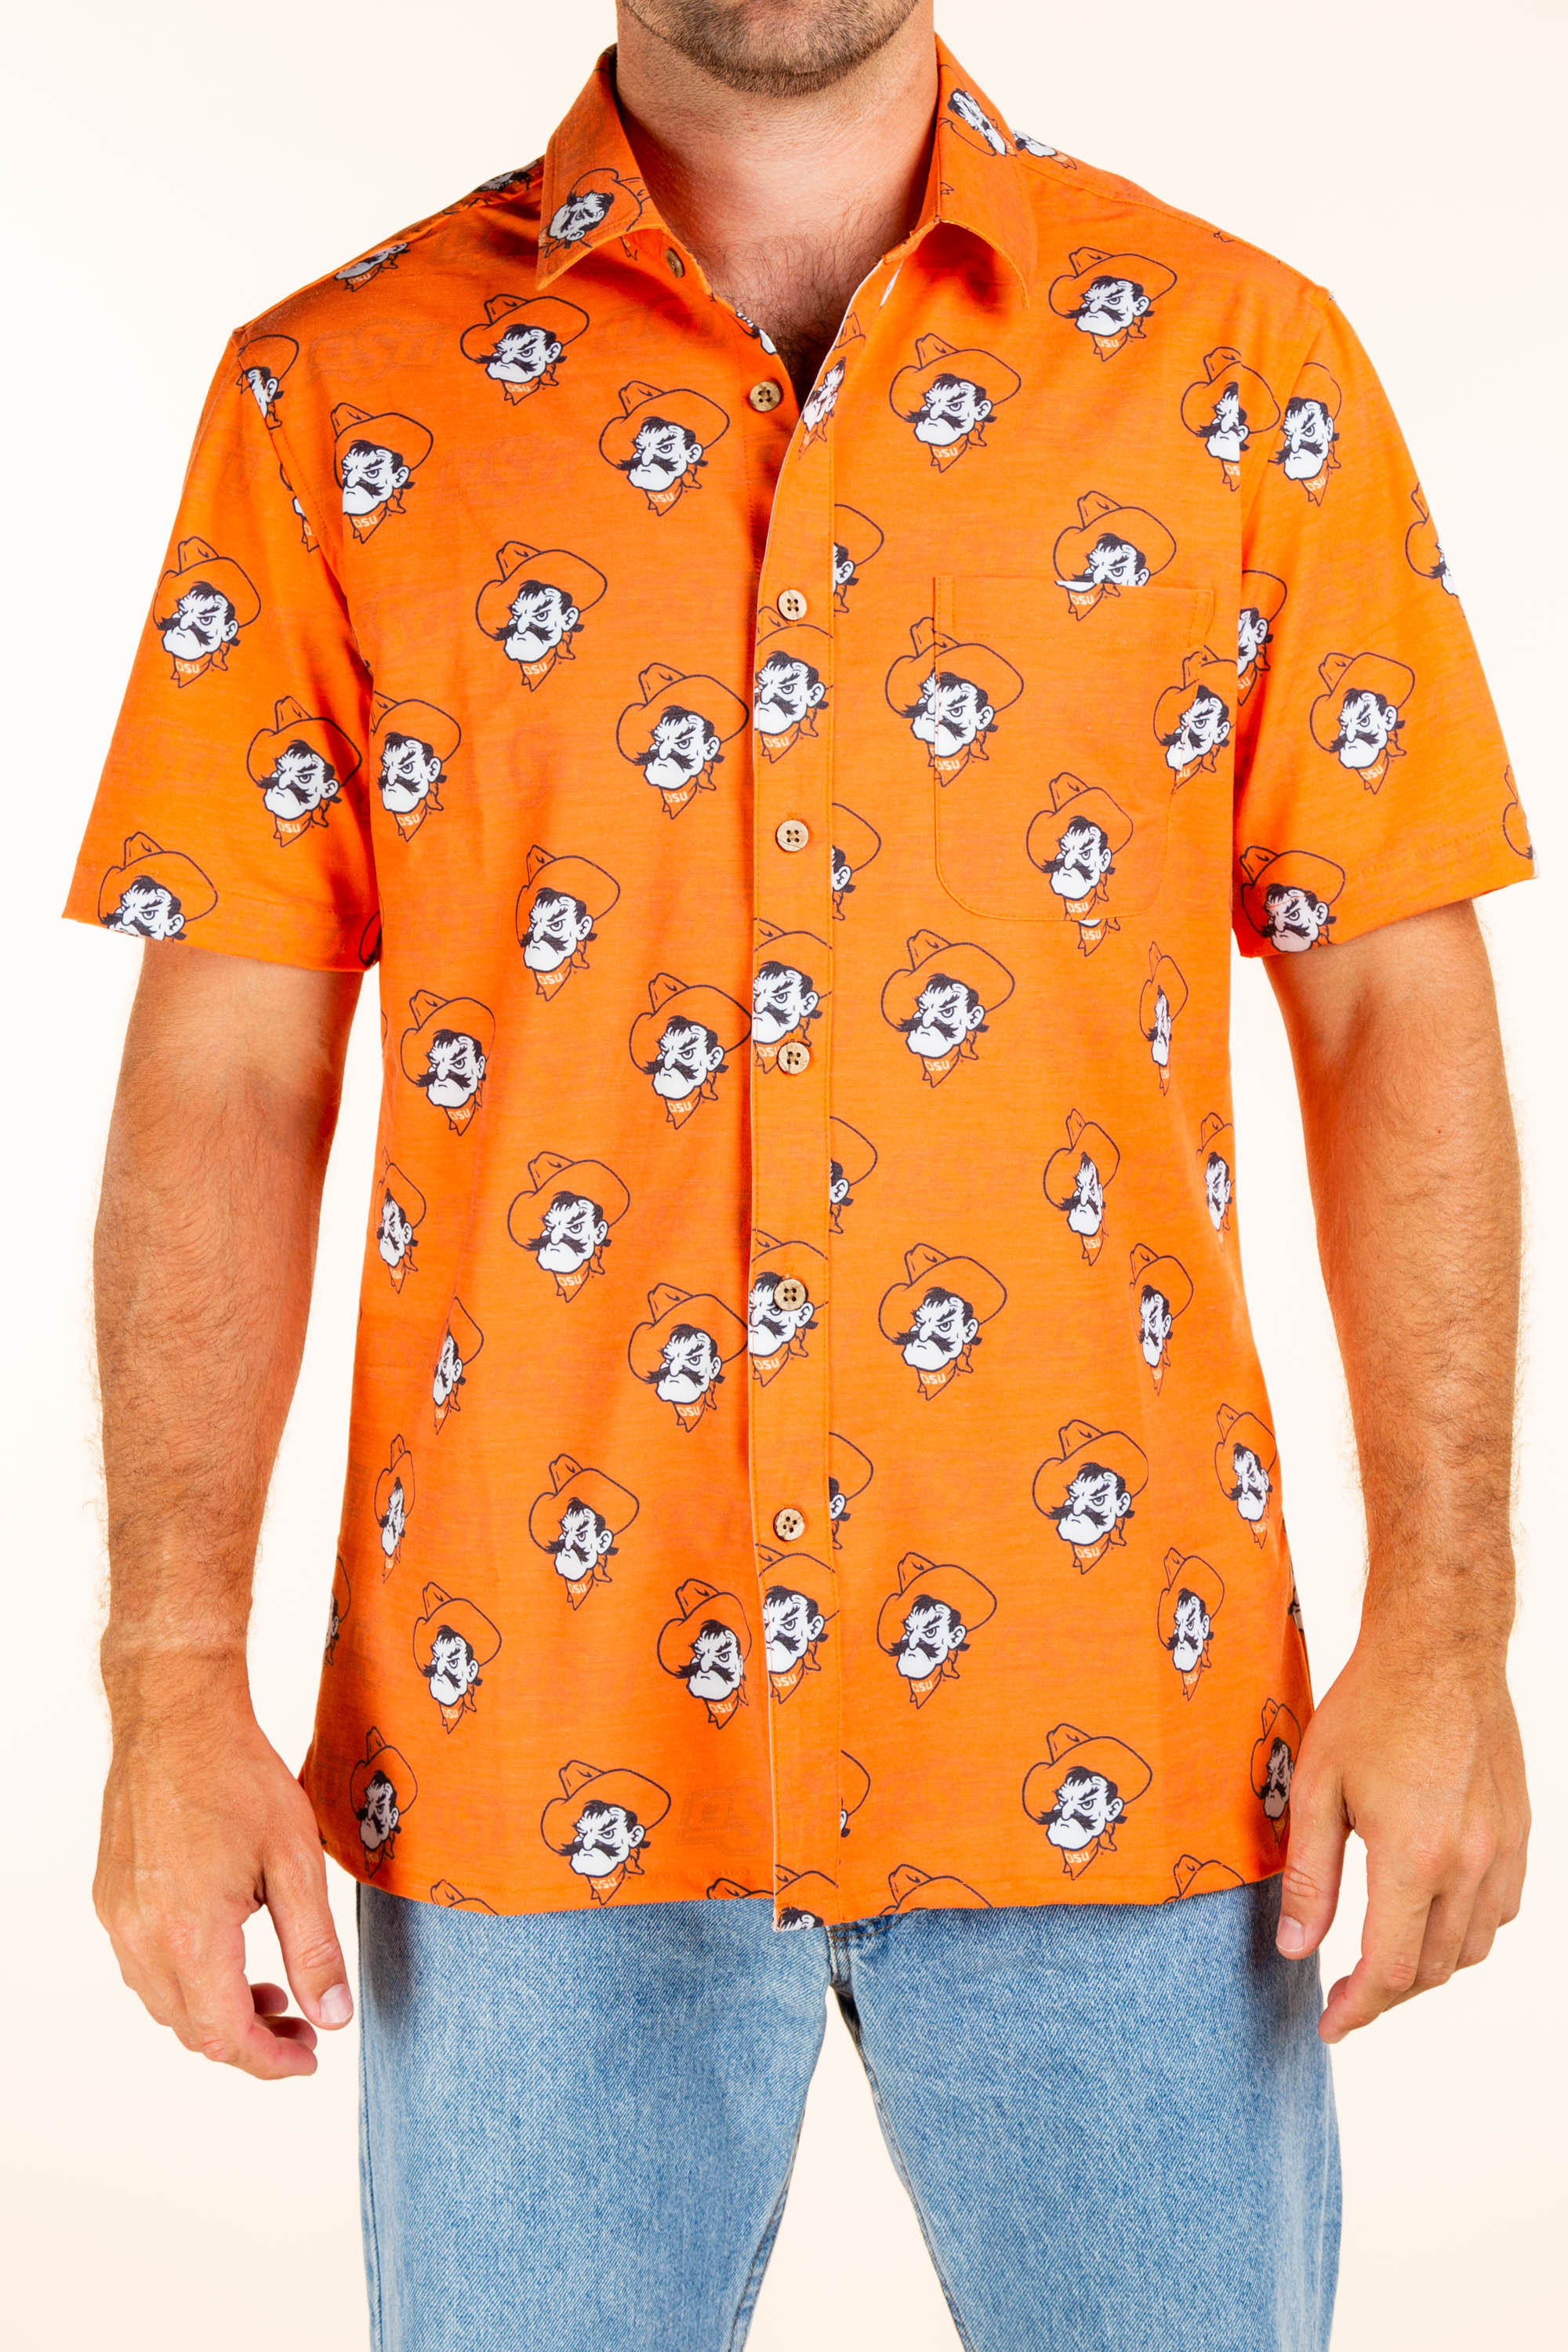 pistol pete men's hawaiian